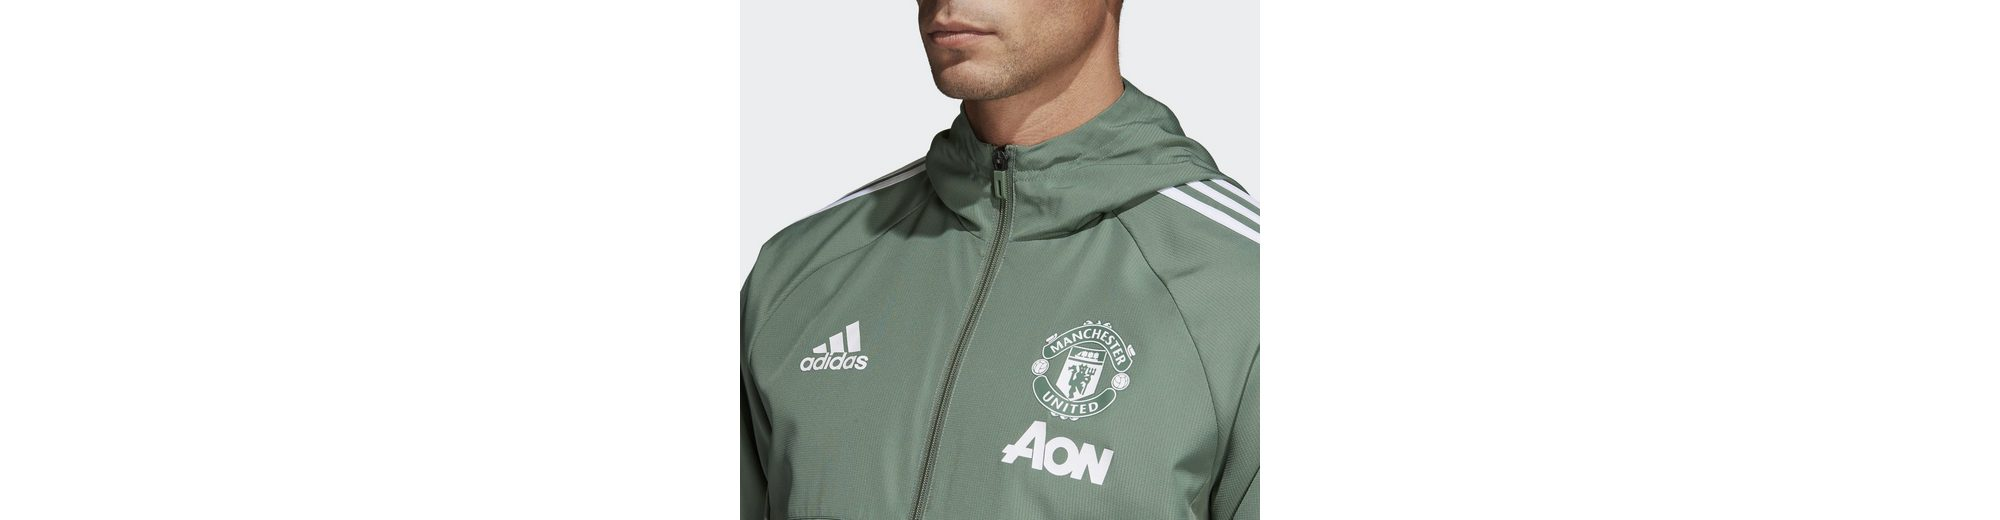 adidas Performance Funktions-Kapuzensweatjacke Manchester United Outlet Factory Outlet JOFs37Hzks